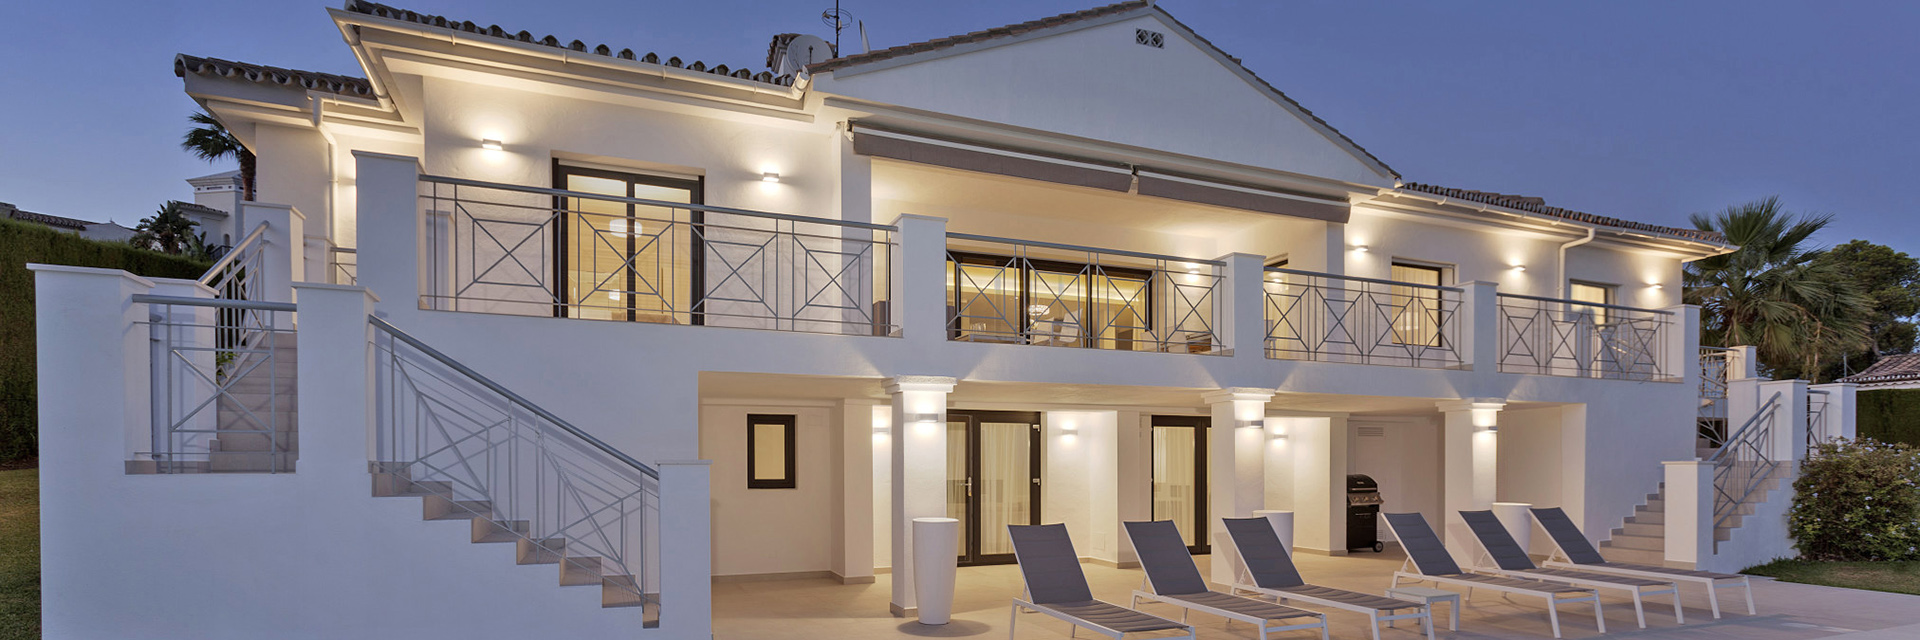 Stunning refurbished villa in Benahavís